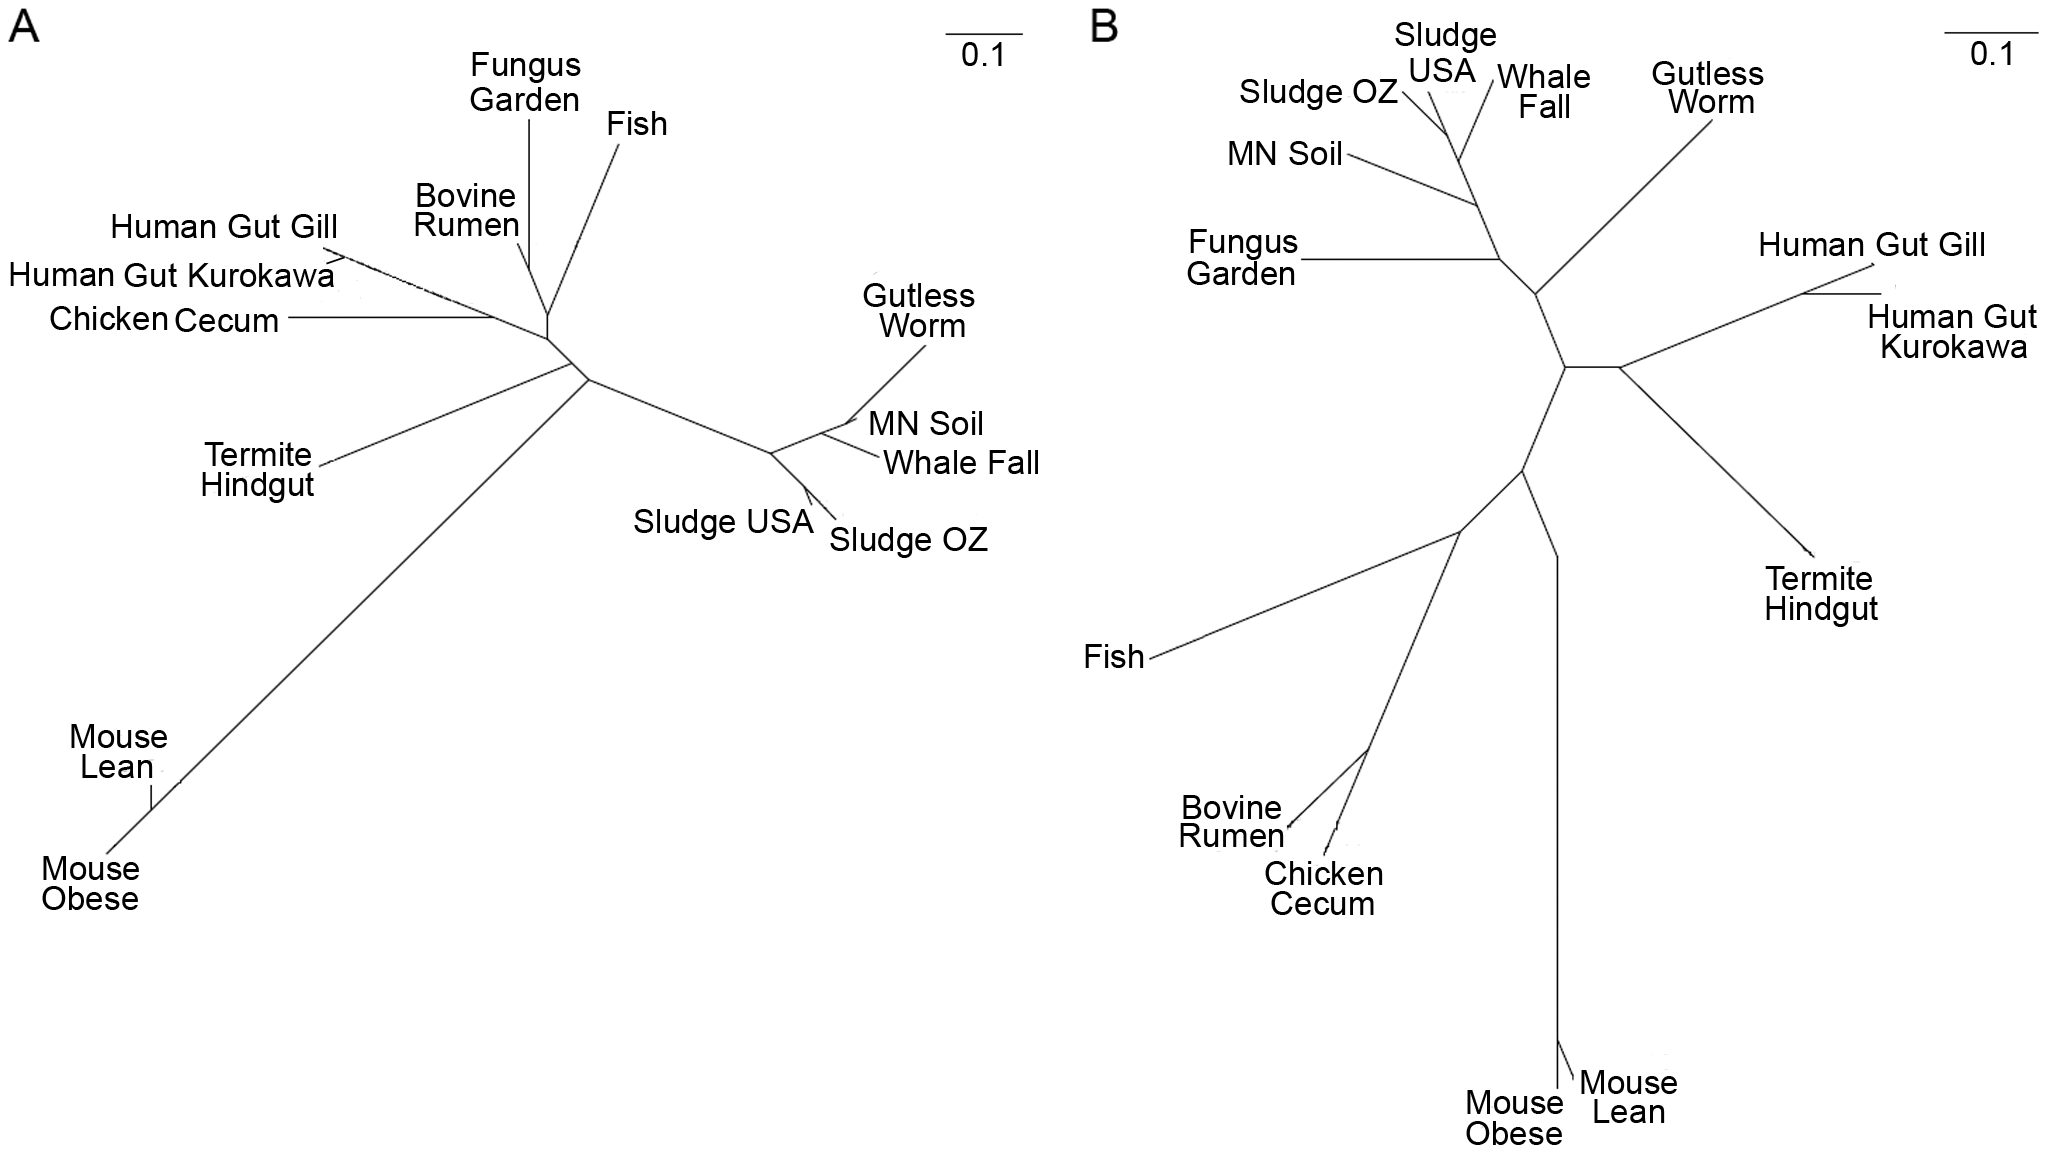 CAZy clustering of the fungus garden metagenome.